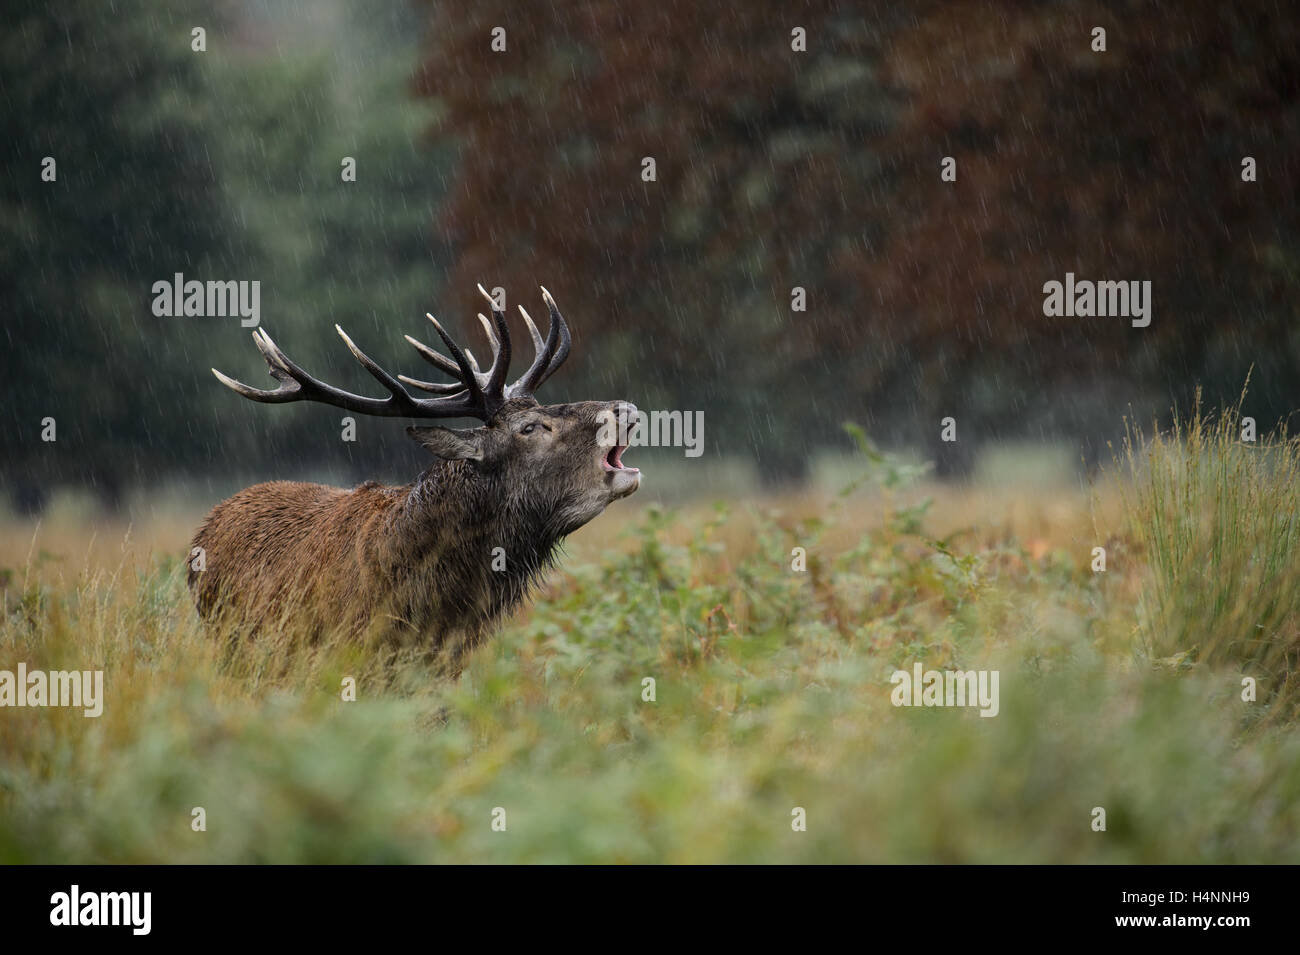 Calling red deer stag in the rain during the rutting season. Richmond Park, London, UK - Stock Image